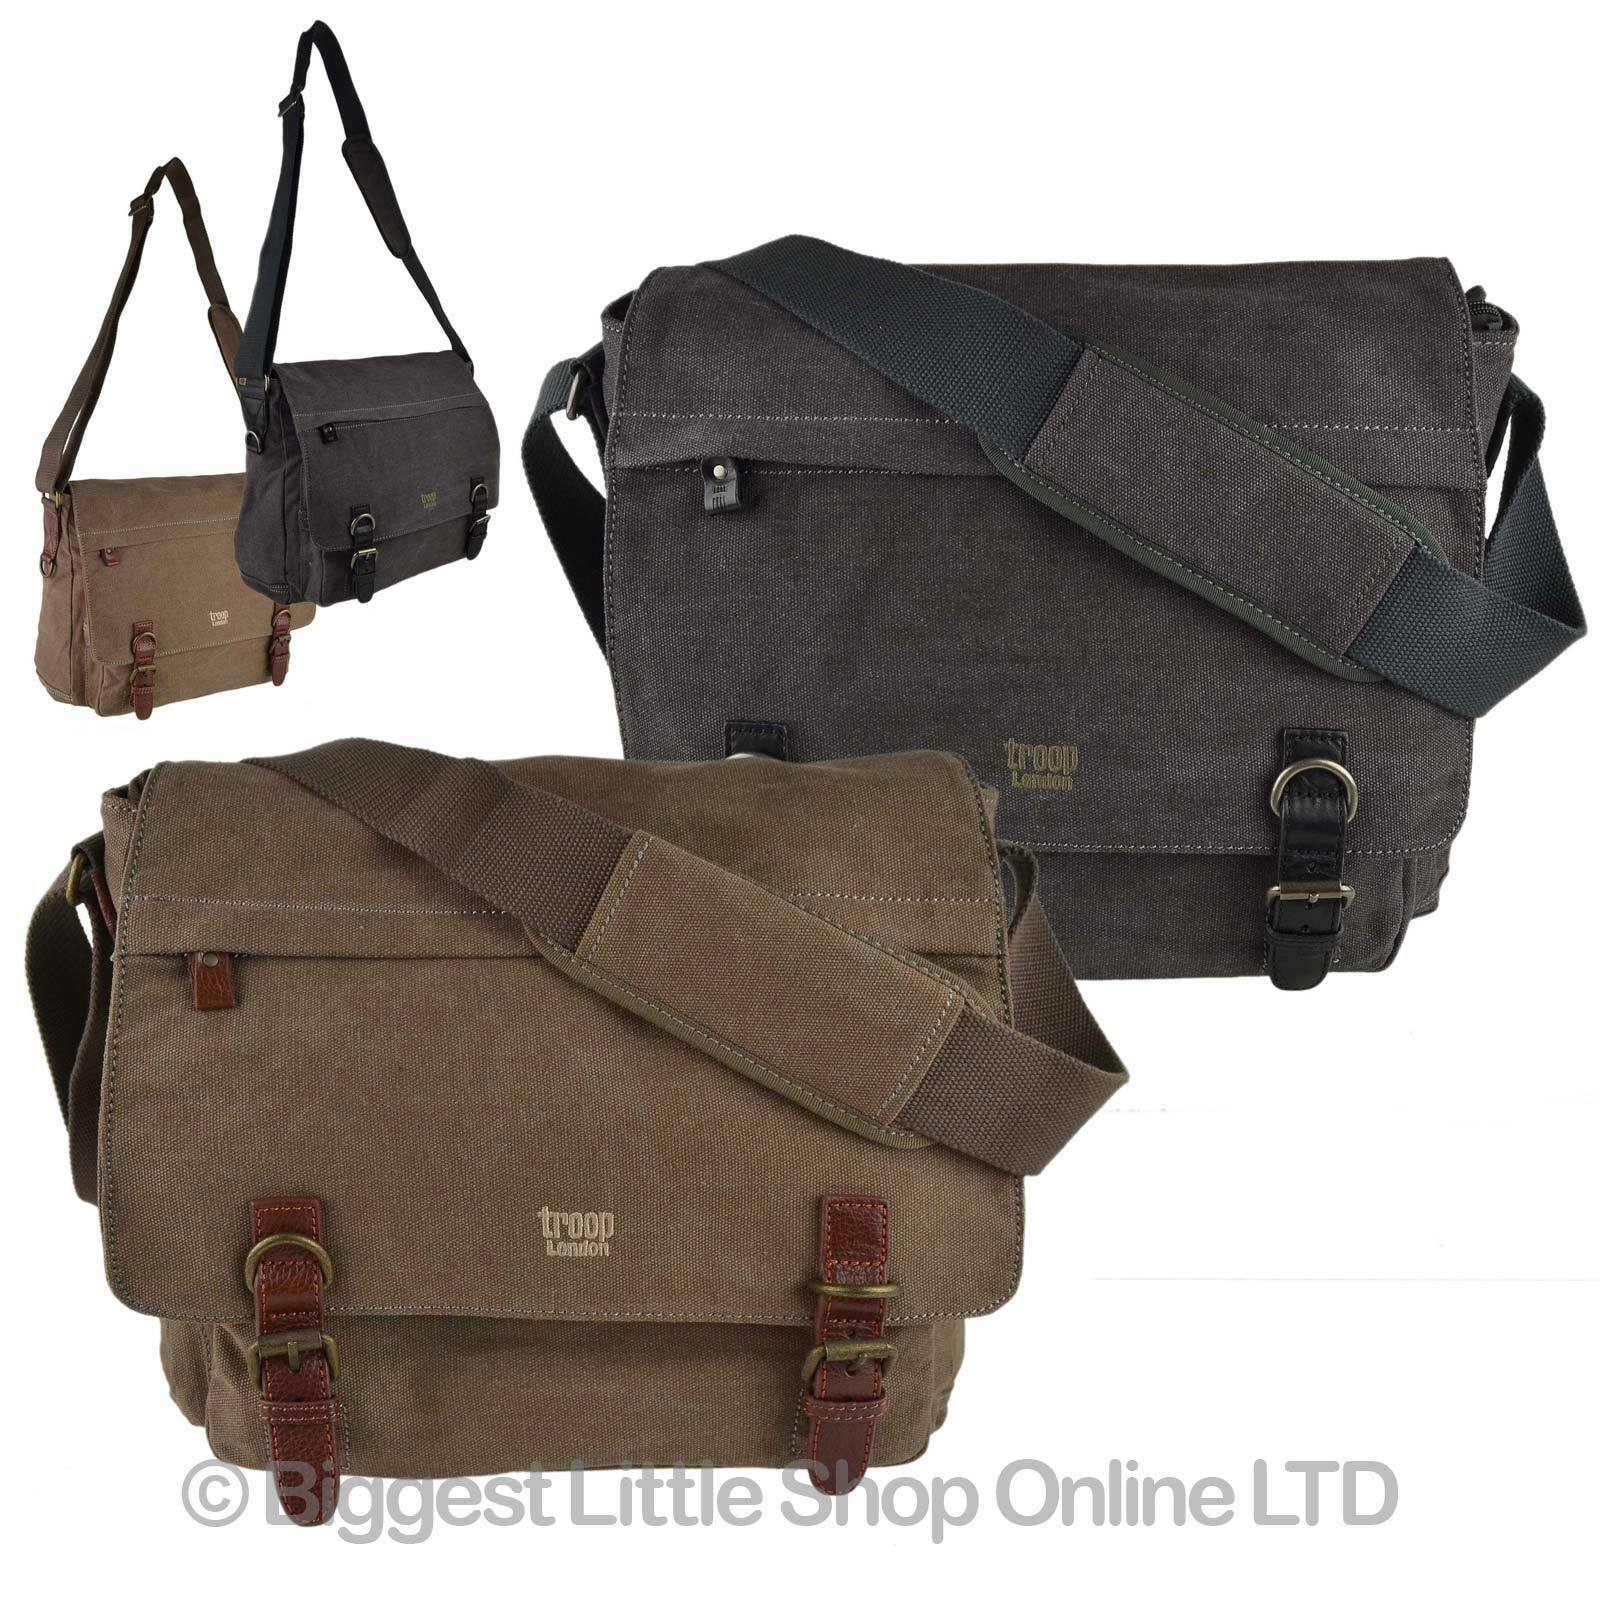 af6b4df95 Details about NEW Mens Ladies Large CANVAS LEATHER Messenger Cross Body BAG  by Troop London